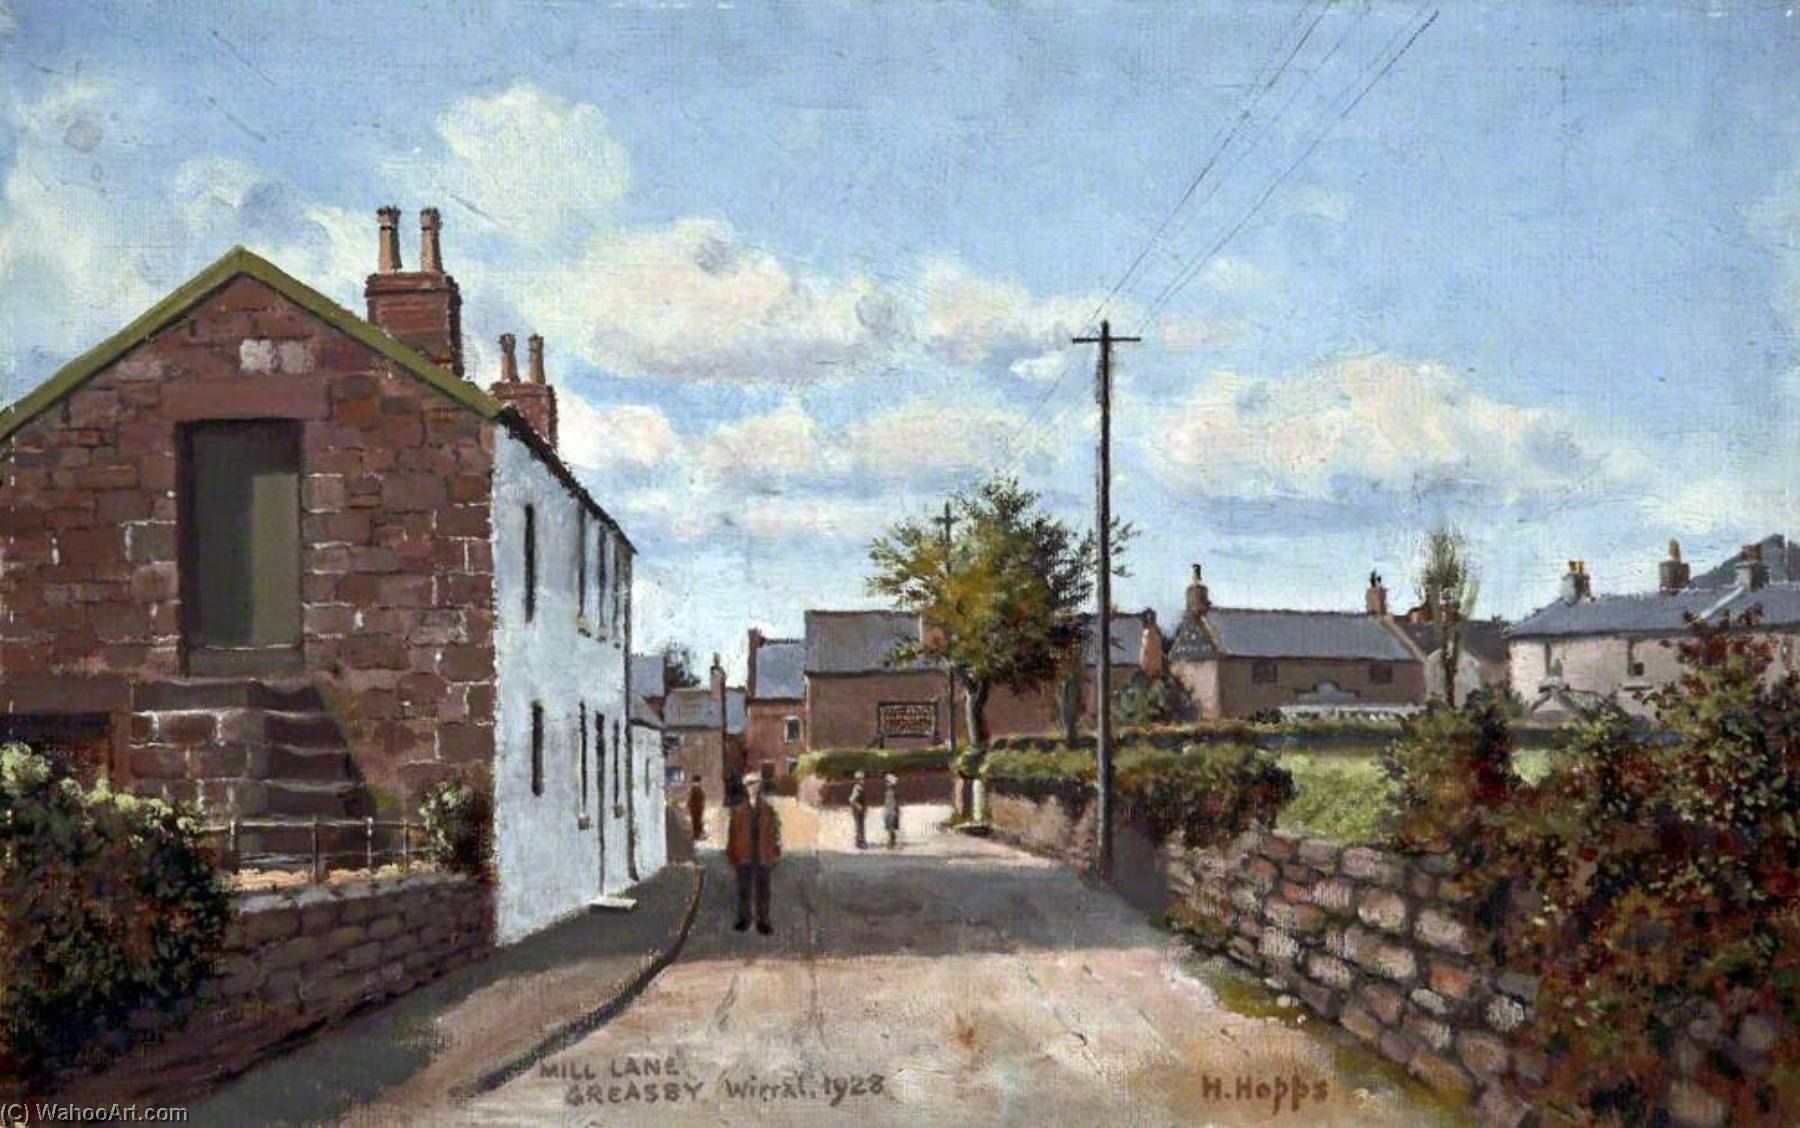 Mill Lane, Greasby, Wirral, 1928 by Harold Hopps | Museum Quality Reproductions | WahooArt.com